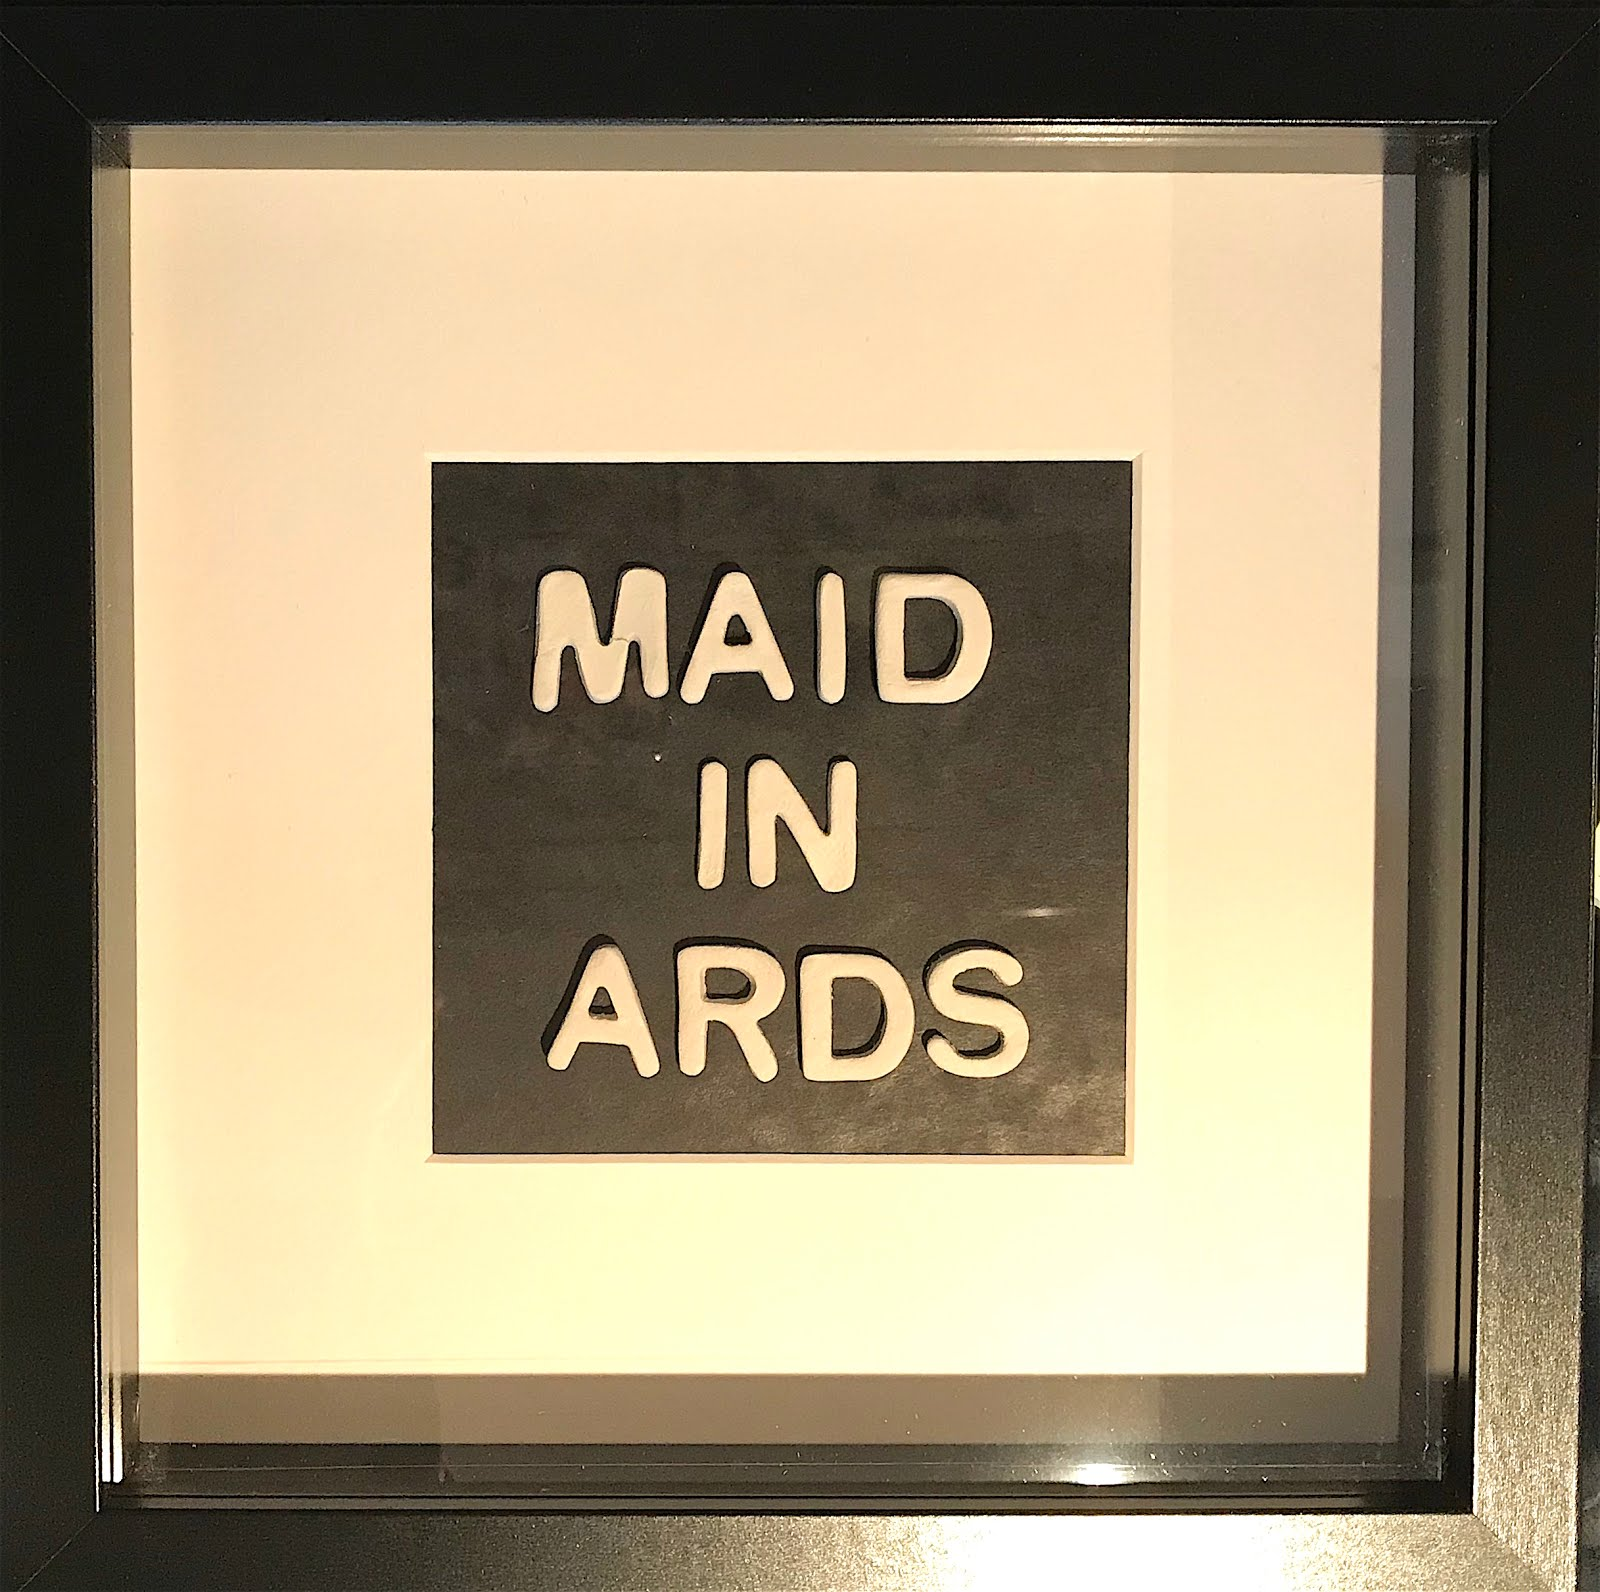 Maid in Ards